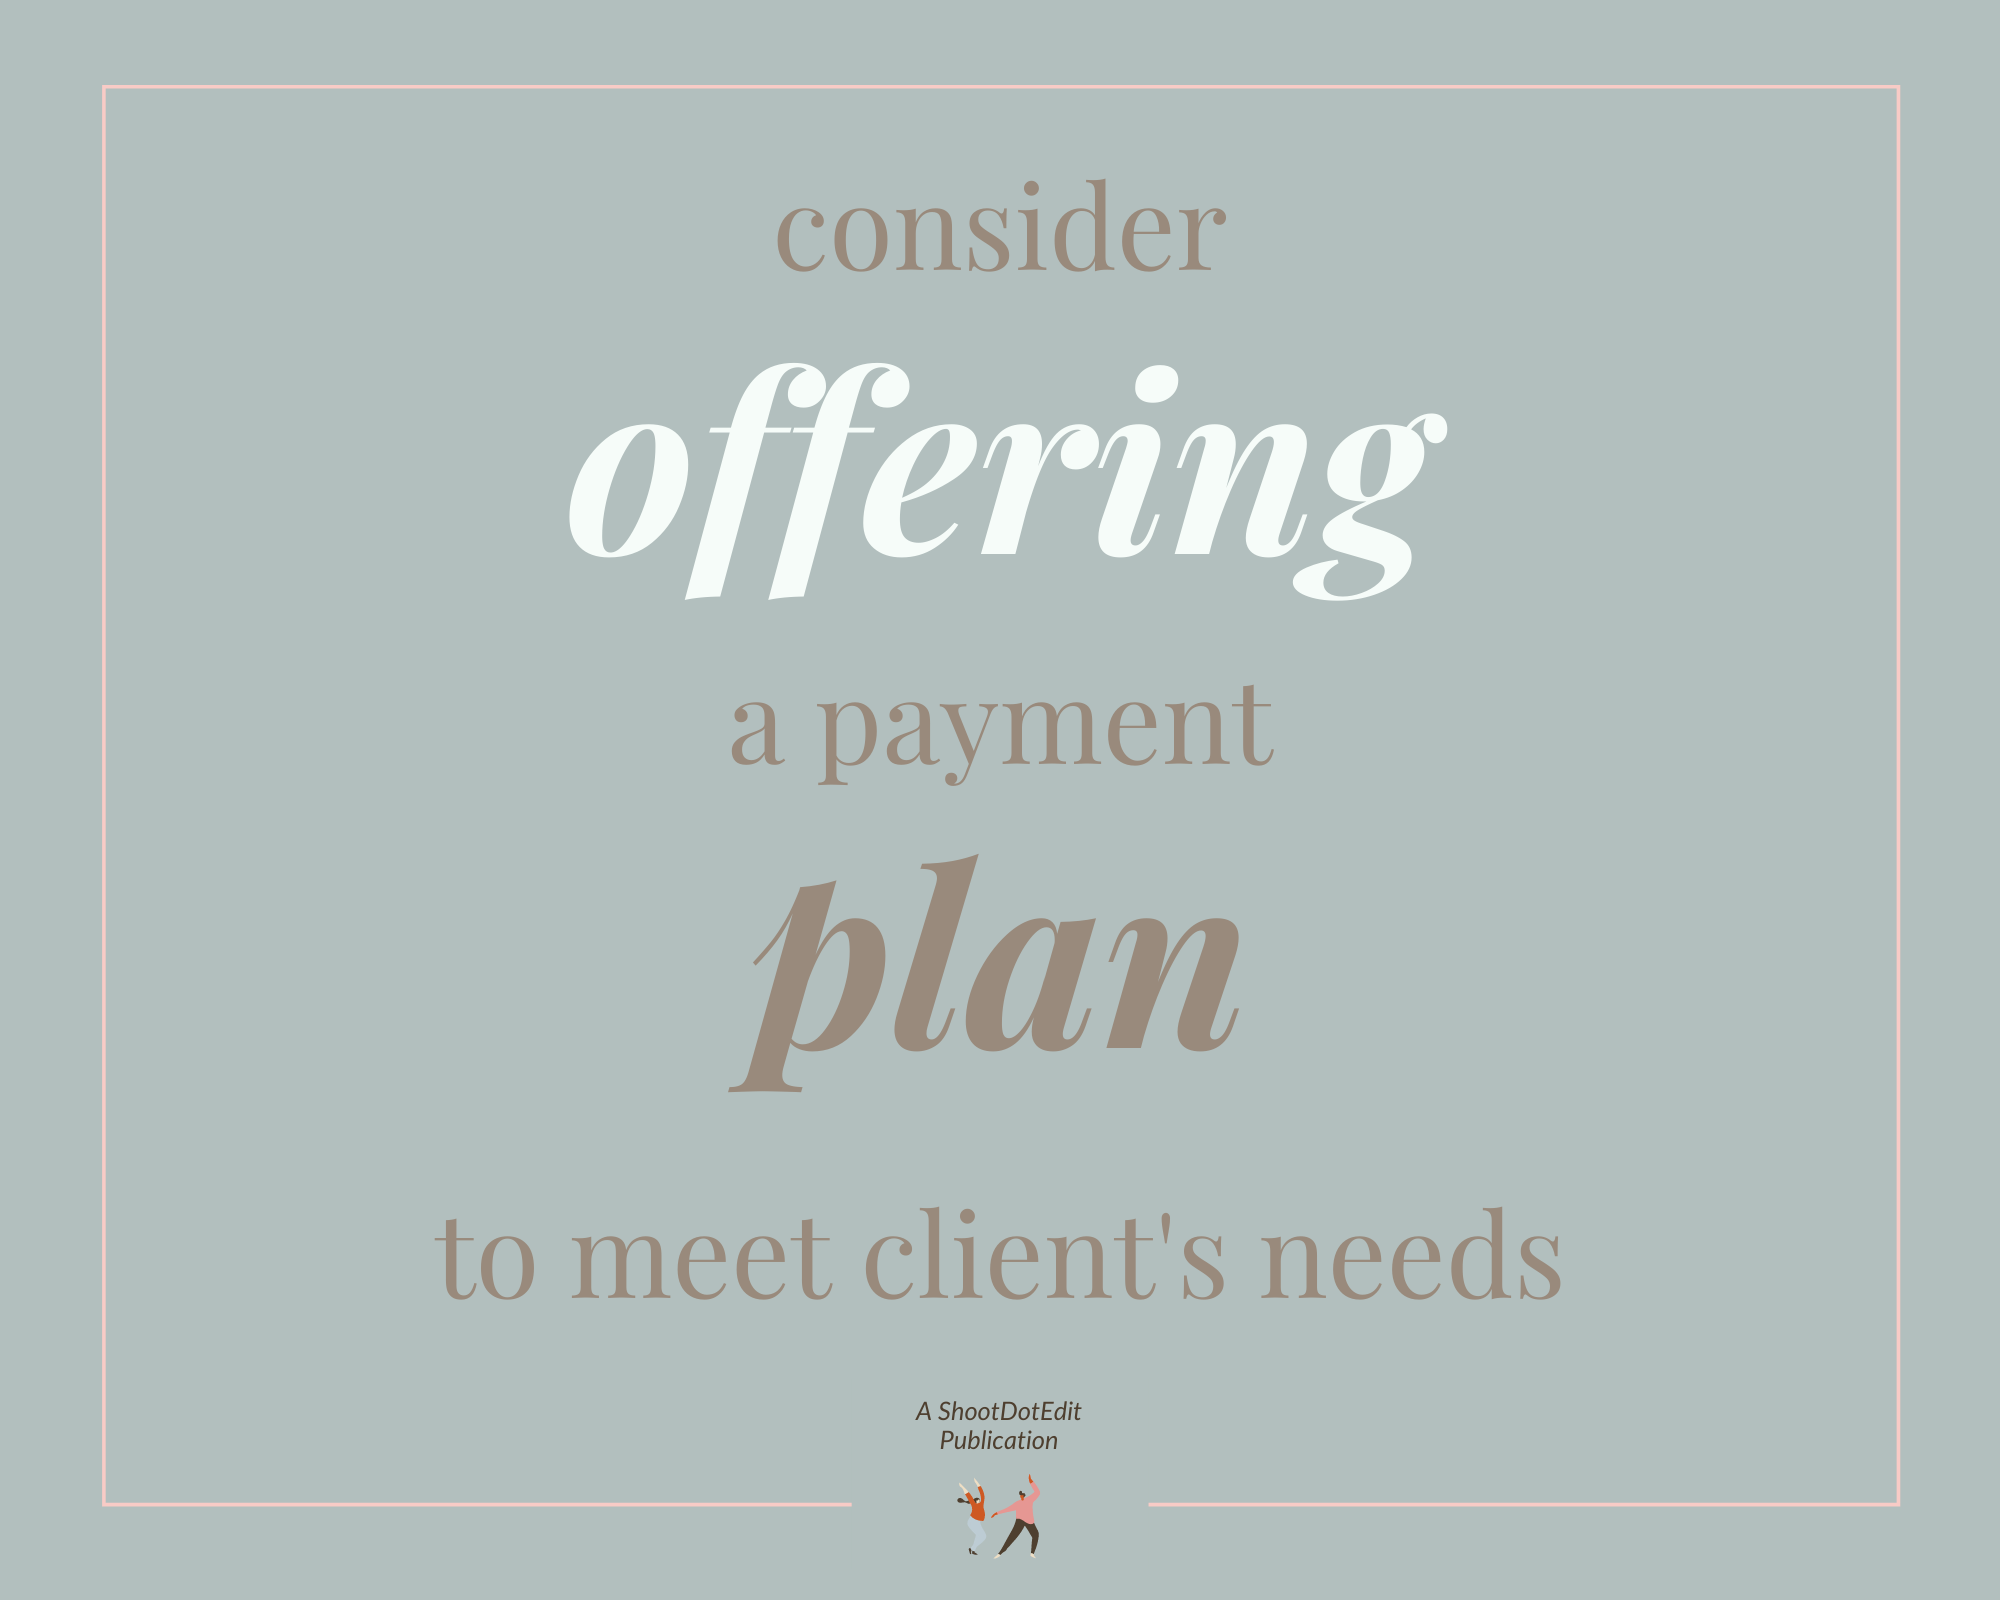 Graphic displaying - consider offering a payment plan to meet client's needs.